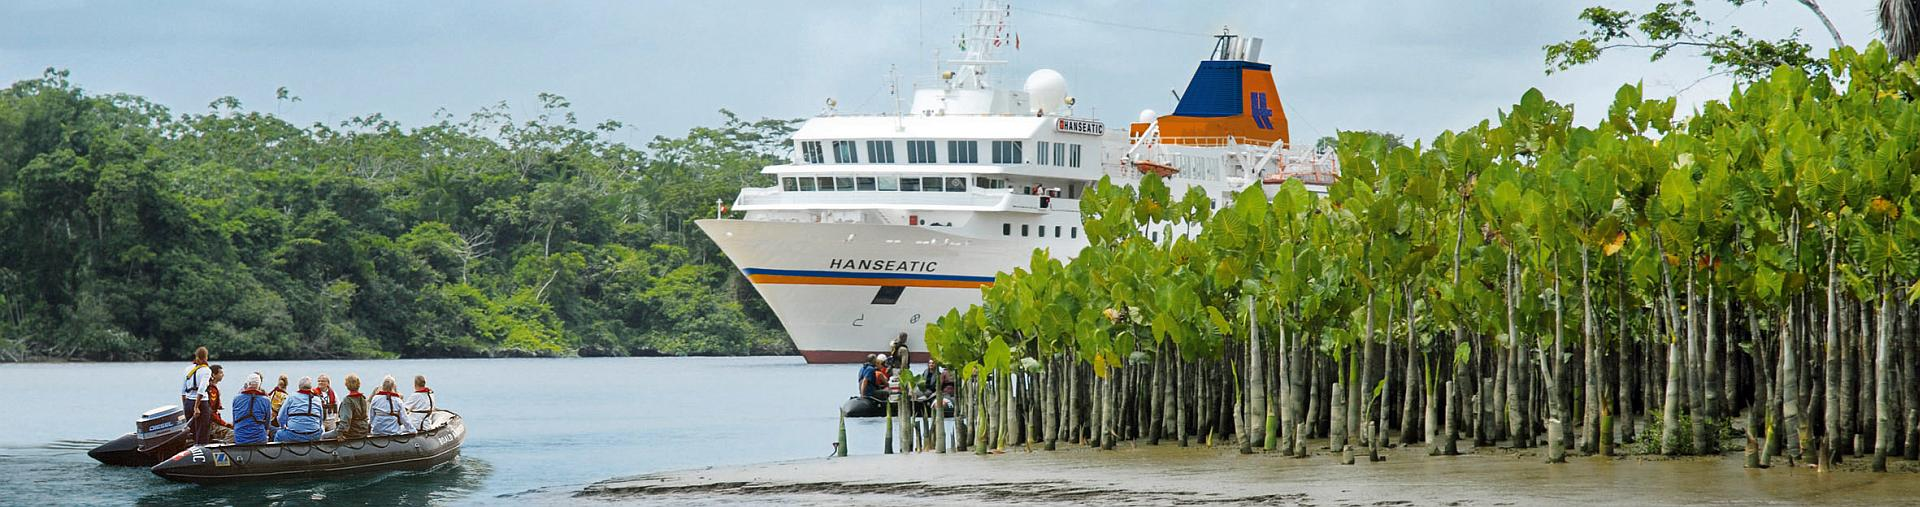 Amazonas Expedition mit MS Hanseatic